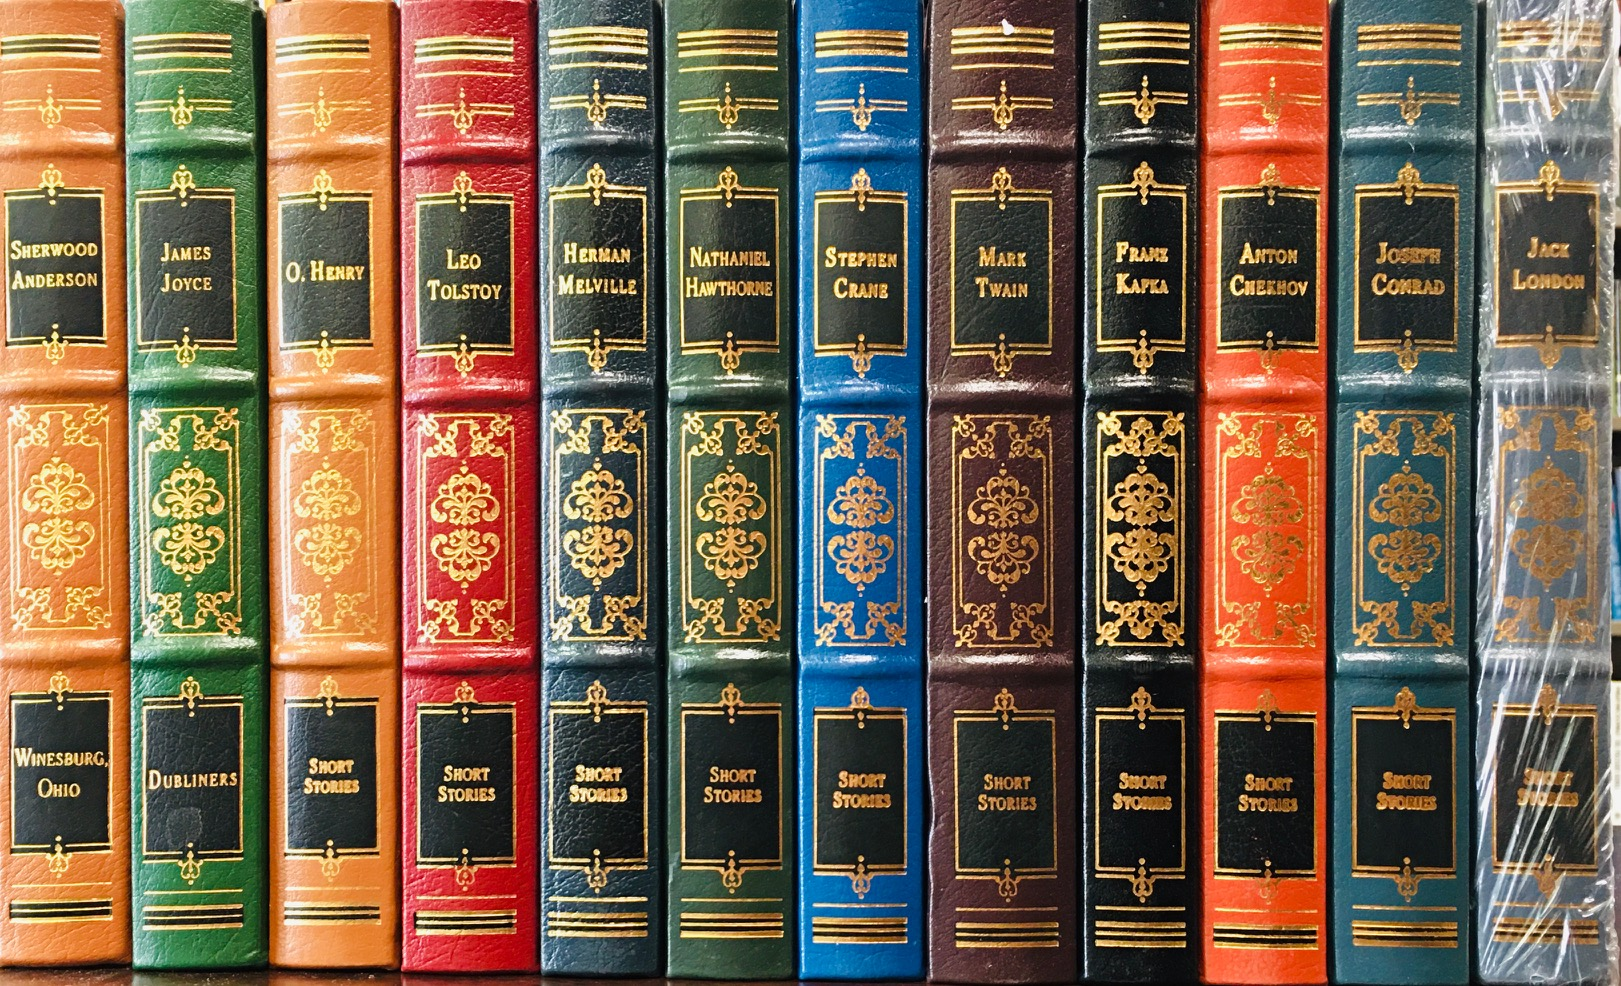 Image for The World's Best Short Stories - Leather Bound Collector's Edition, 12 Volume Matched Set (Complete)